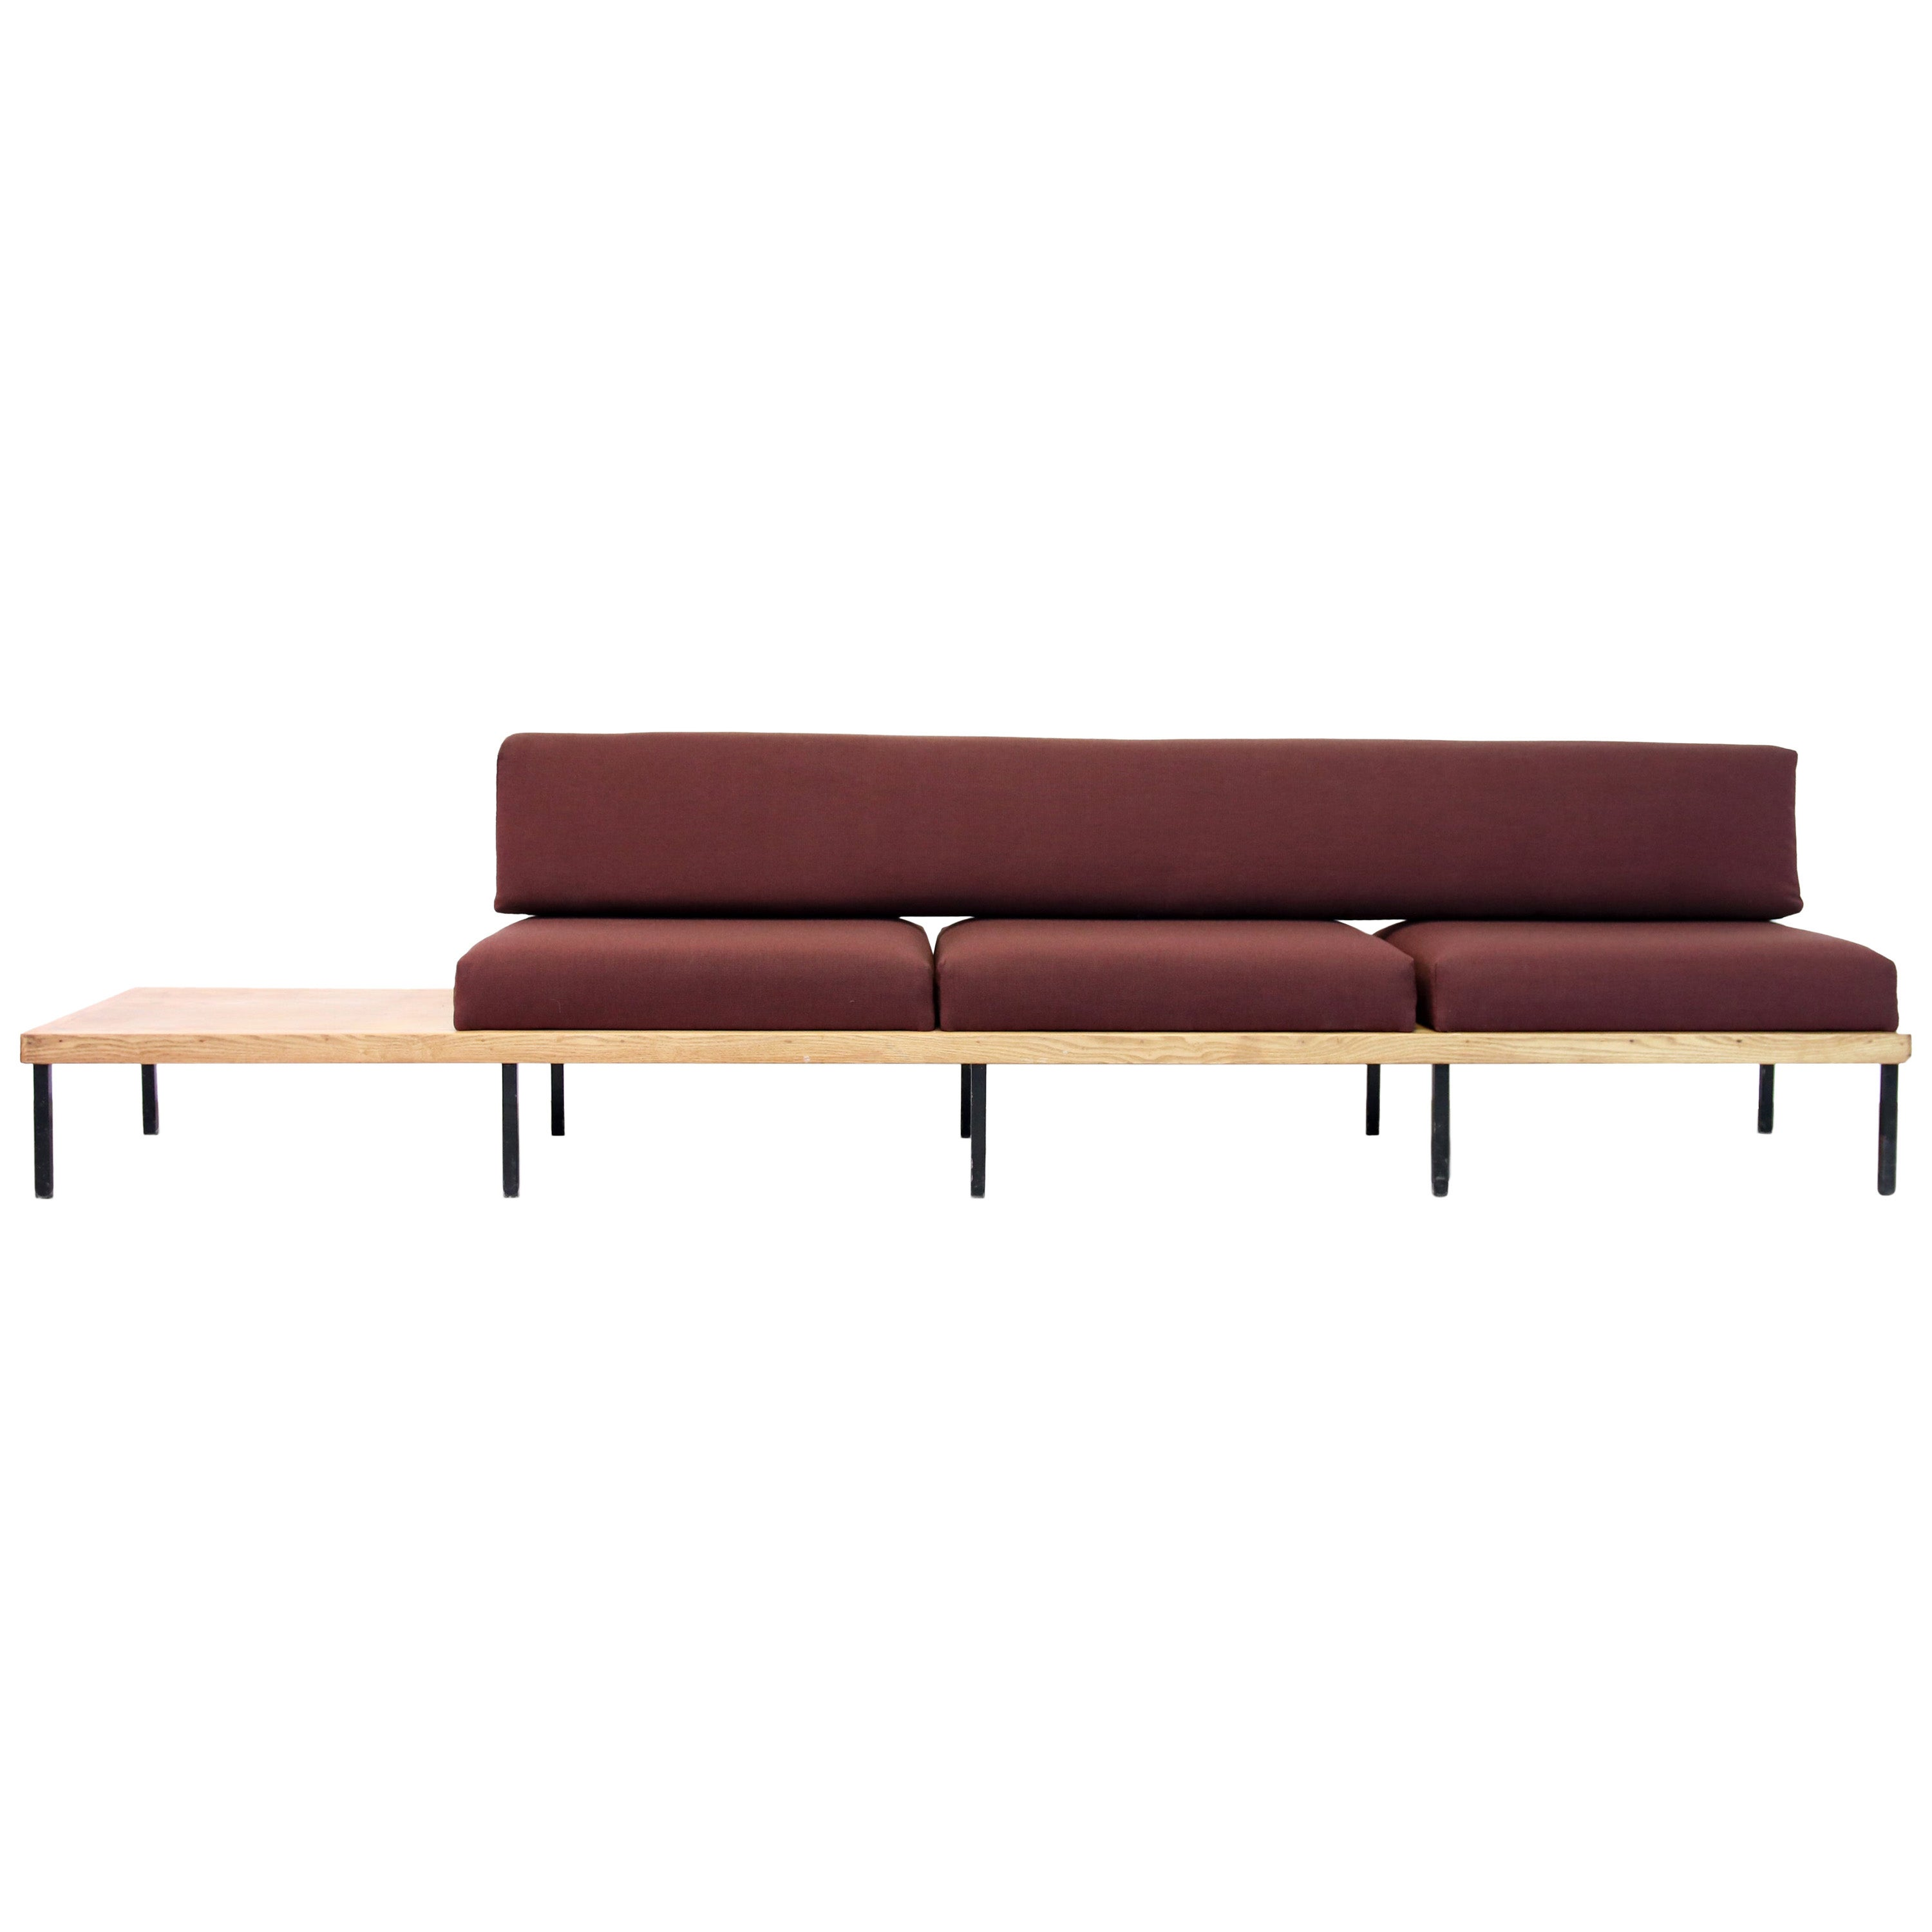 Minimalist Oak Wooden Design Bench Sofa with integrated table